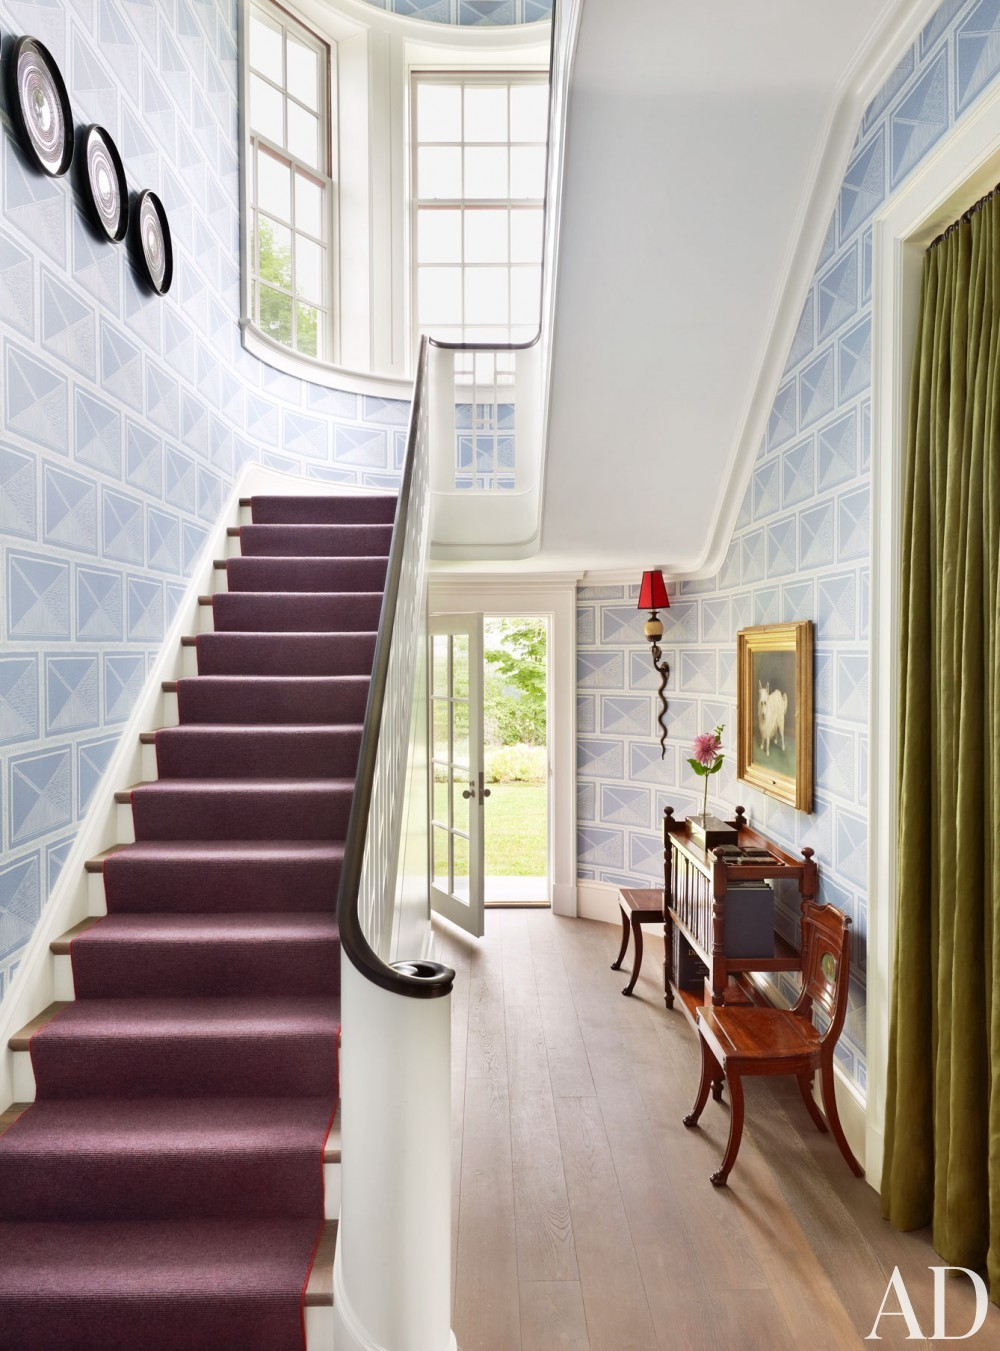 Traditional Staircase/Hallway by Katie Ridder and Peter Pennoyer in Millbrook, NY